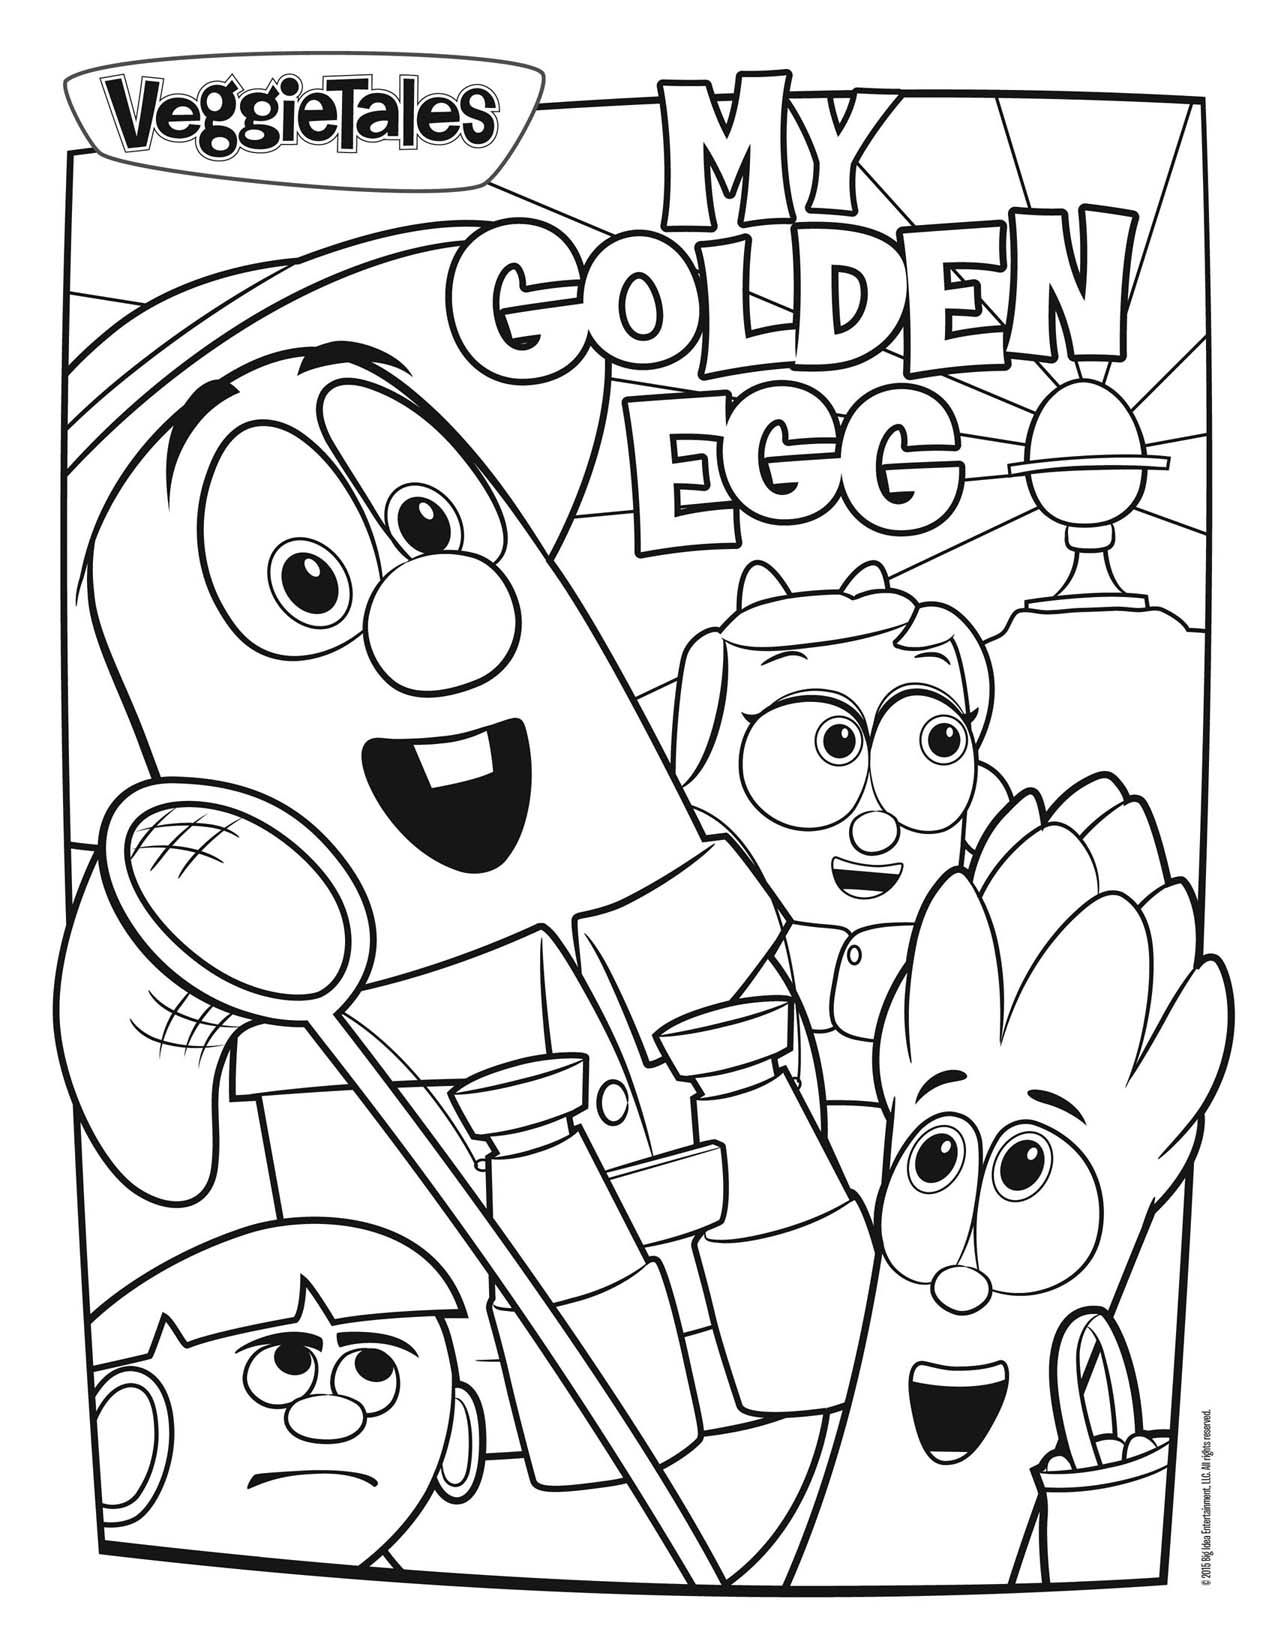 my gold egg noahs ark coloring page - Noahs Ark Coloring Page 2